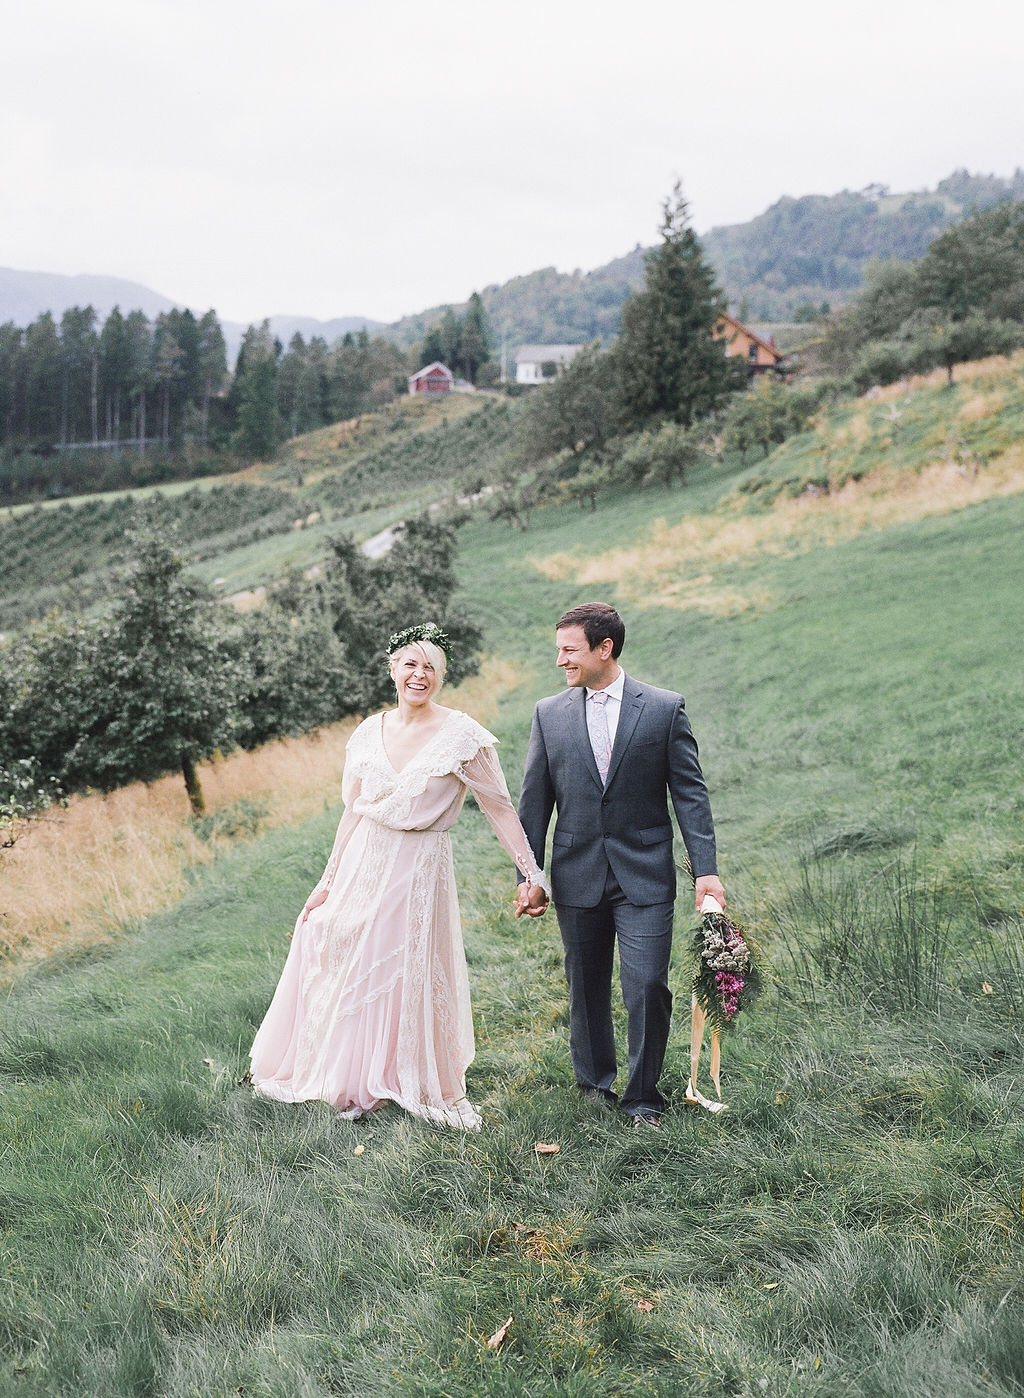 Ulvik Norway Wedding Photographer Destination Wedding Photographer Andrea Rodway Photography